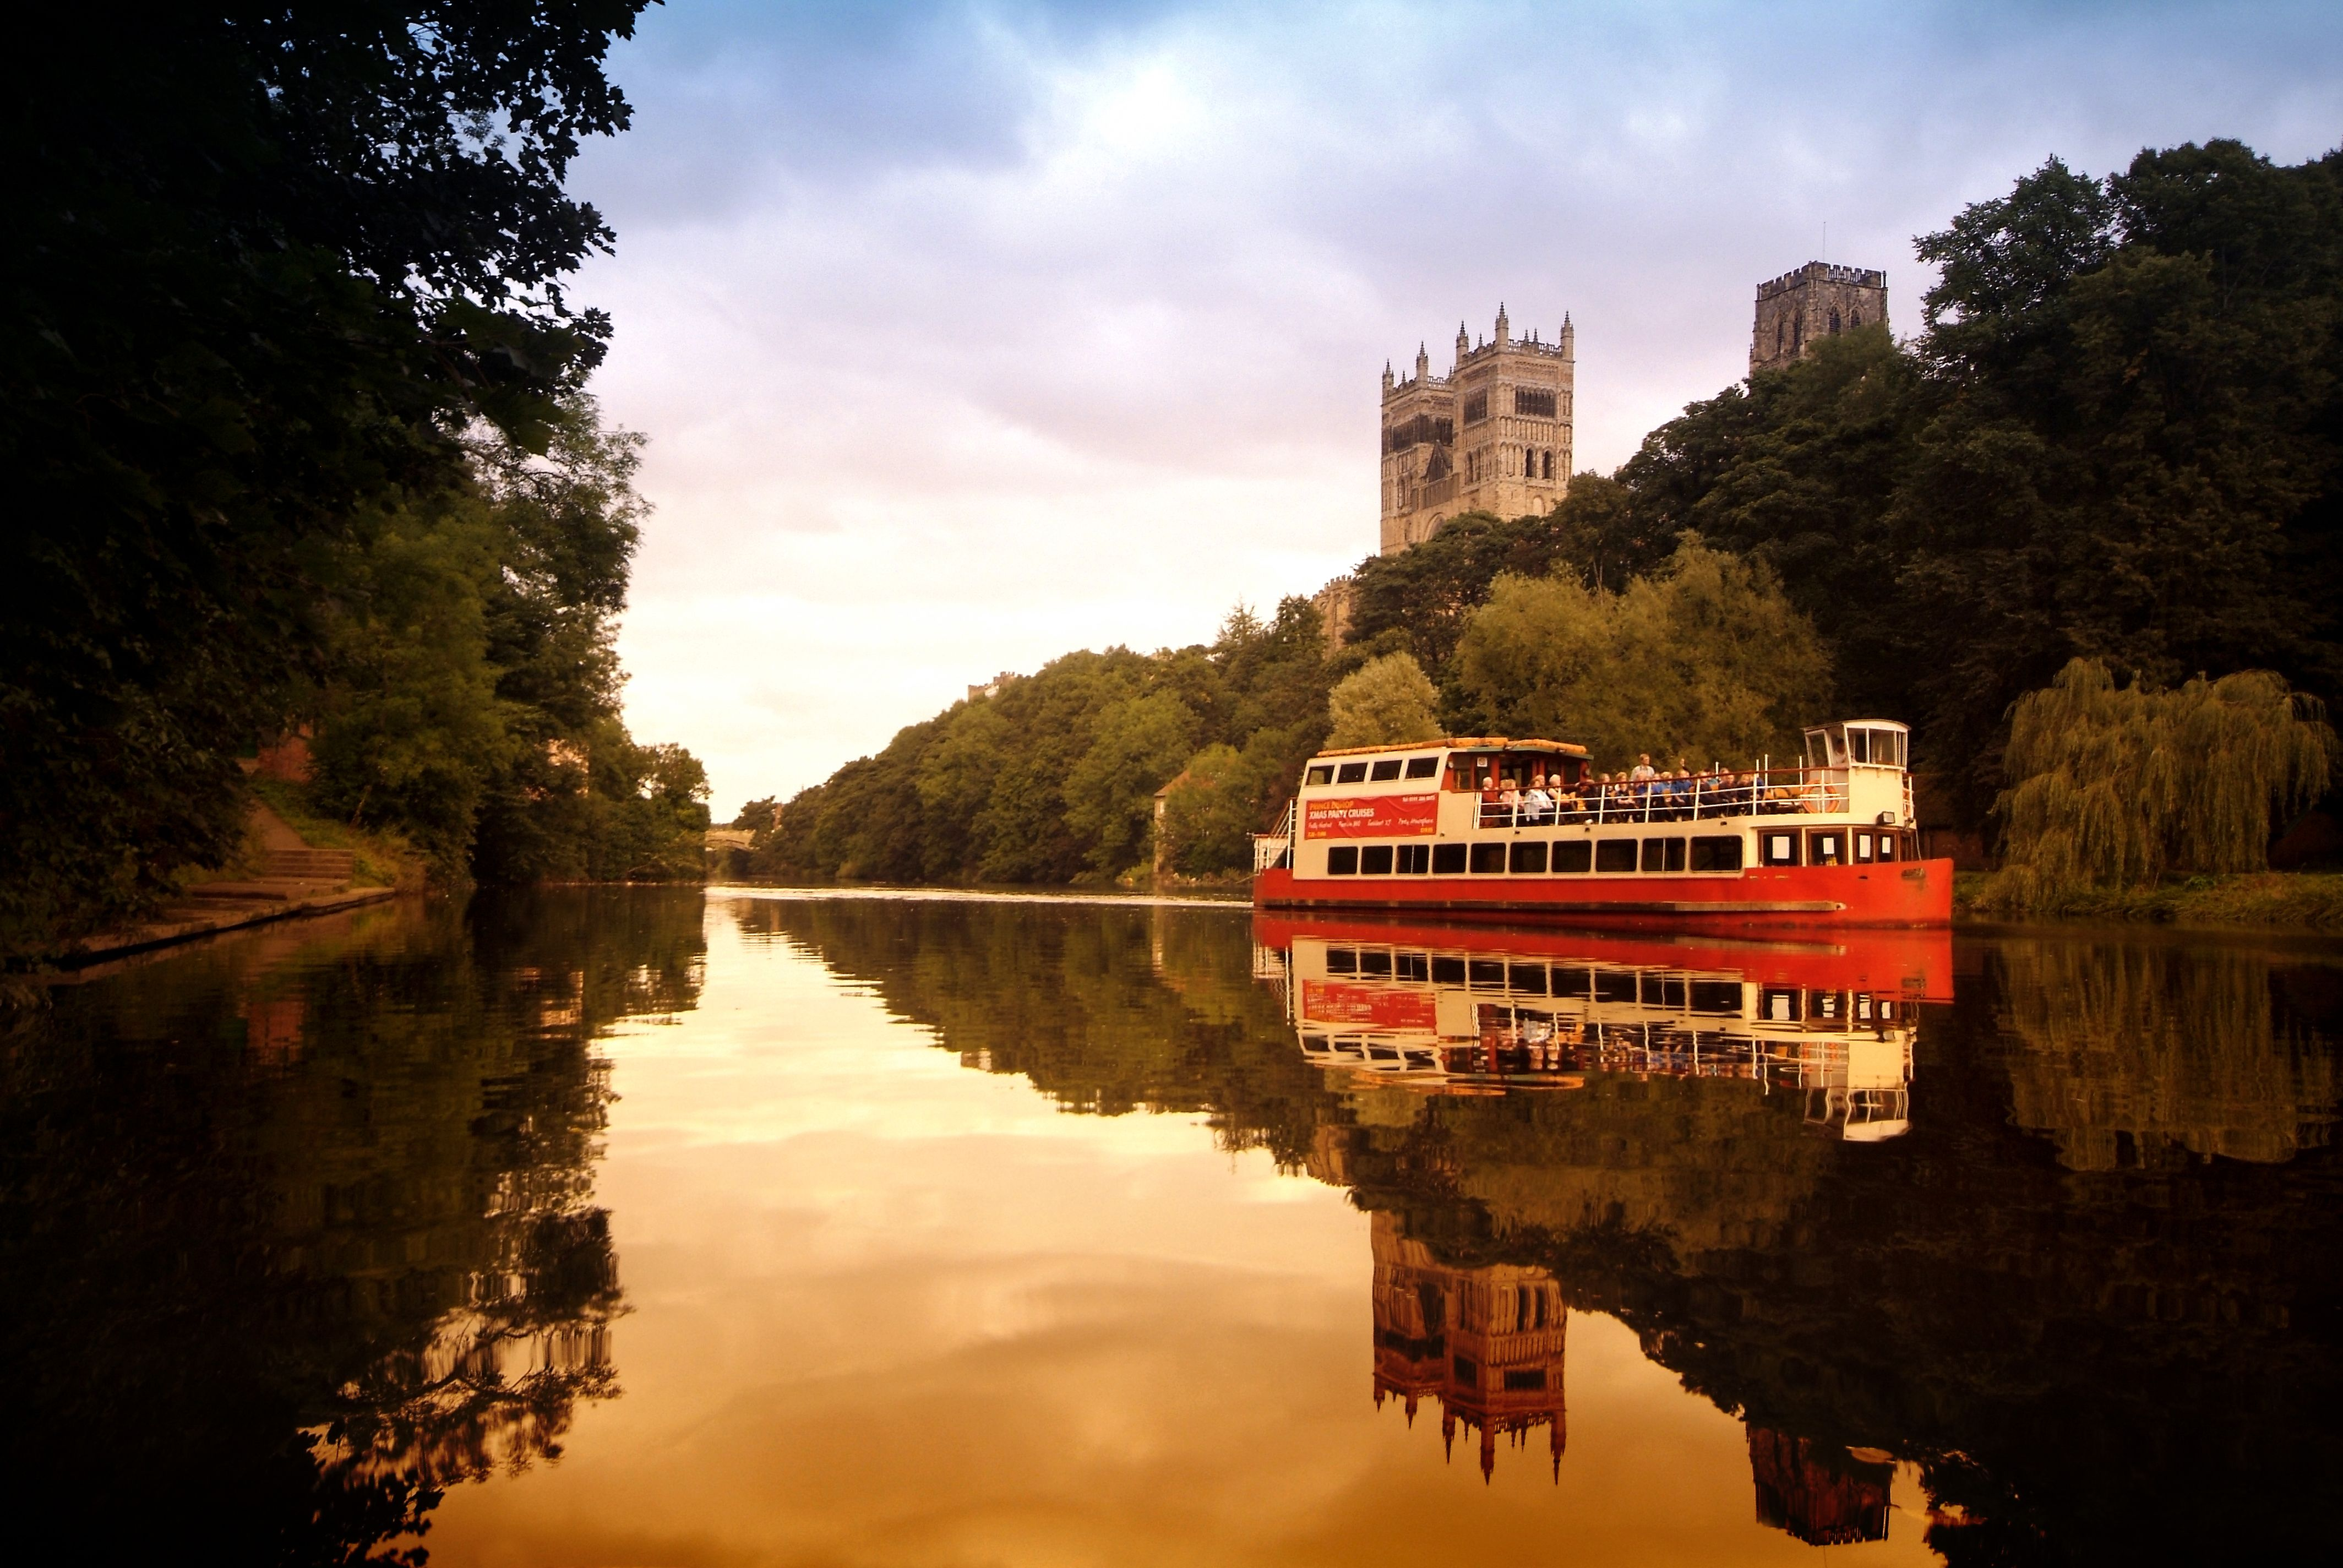 Enjoy A Romantic Boat Ride Aboard The Prince Bishops River Cruiser